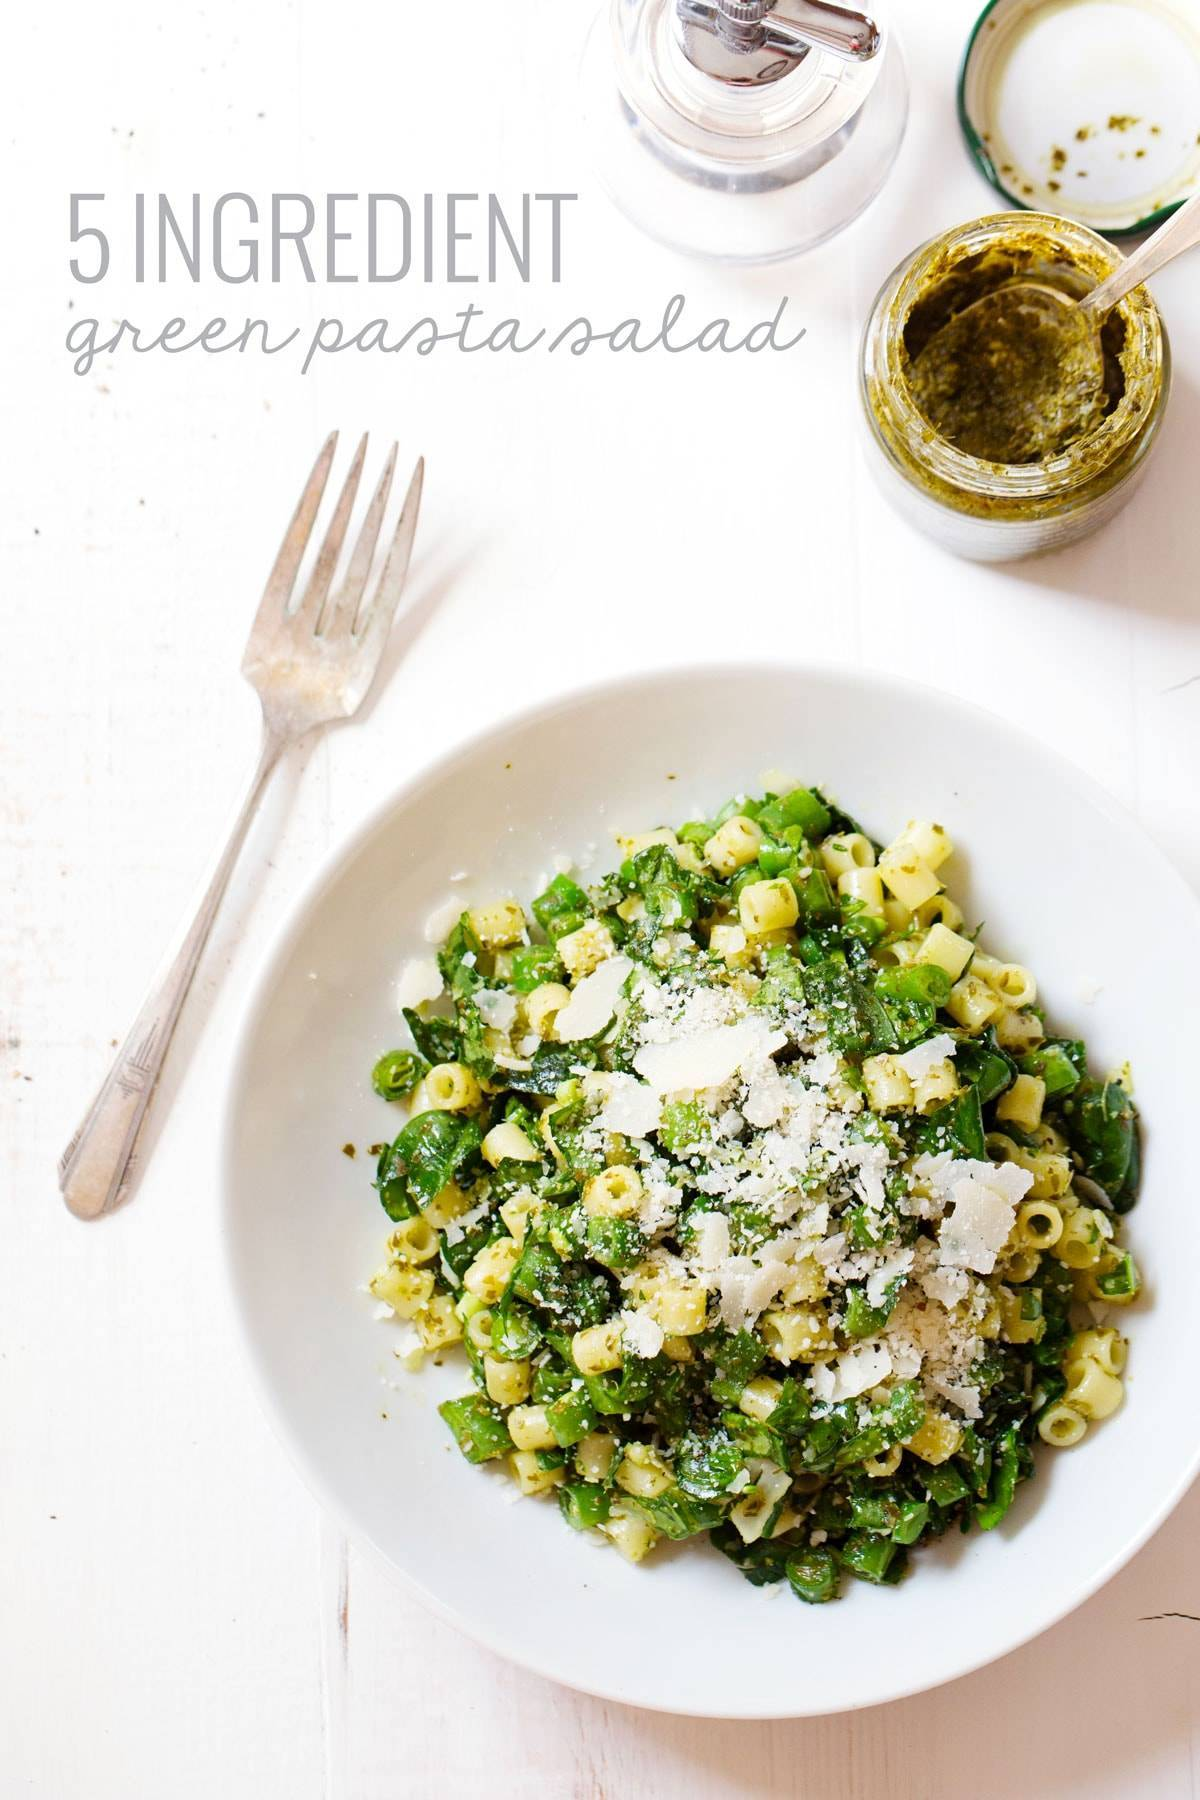 Five Ingredient Simple Green Pasta Salad - basil, olive oil, garlic, and lemon juice flavor this fresh, yummy, simple summer dish! | pinchofyum.com #pasta #salad #healthy #recipe